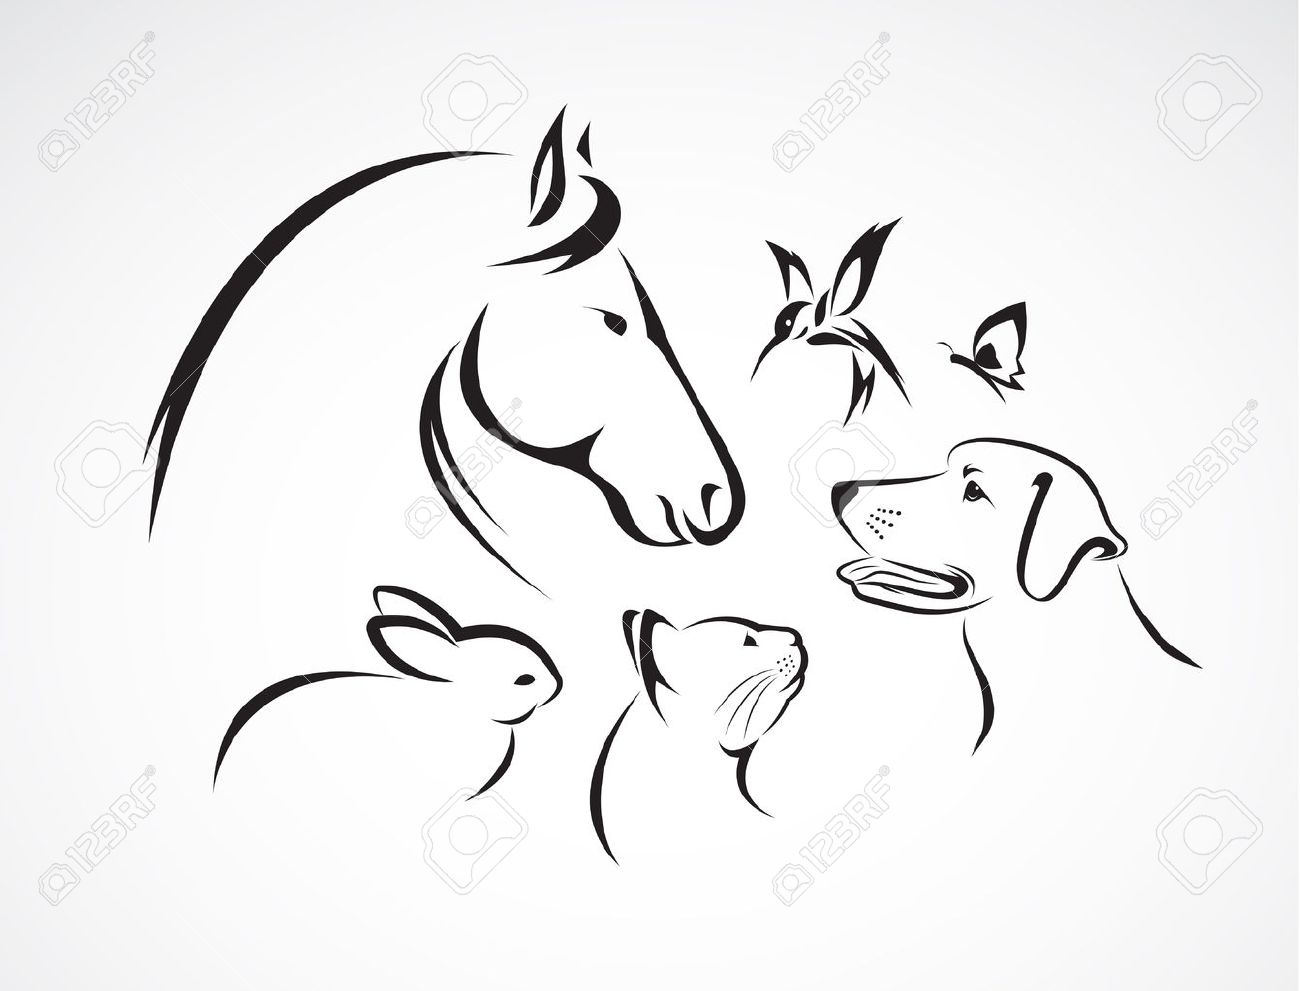 group of pets - Horse, dog, cat, bird, butterfly, rabbit isolated on white background - 57006586